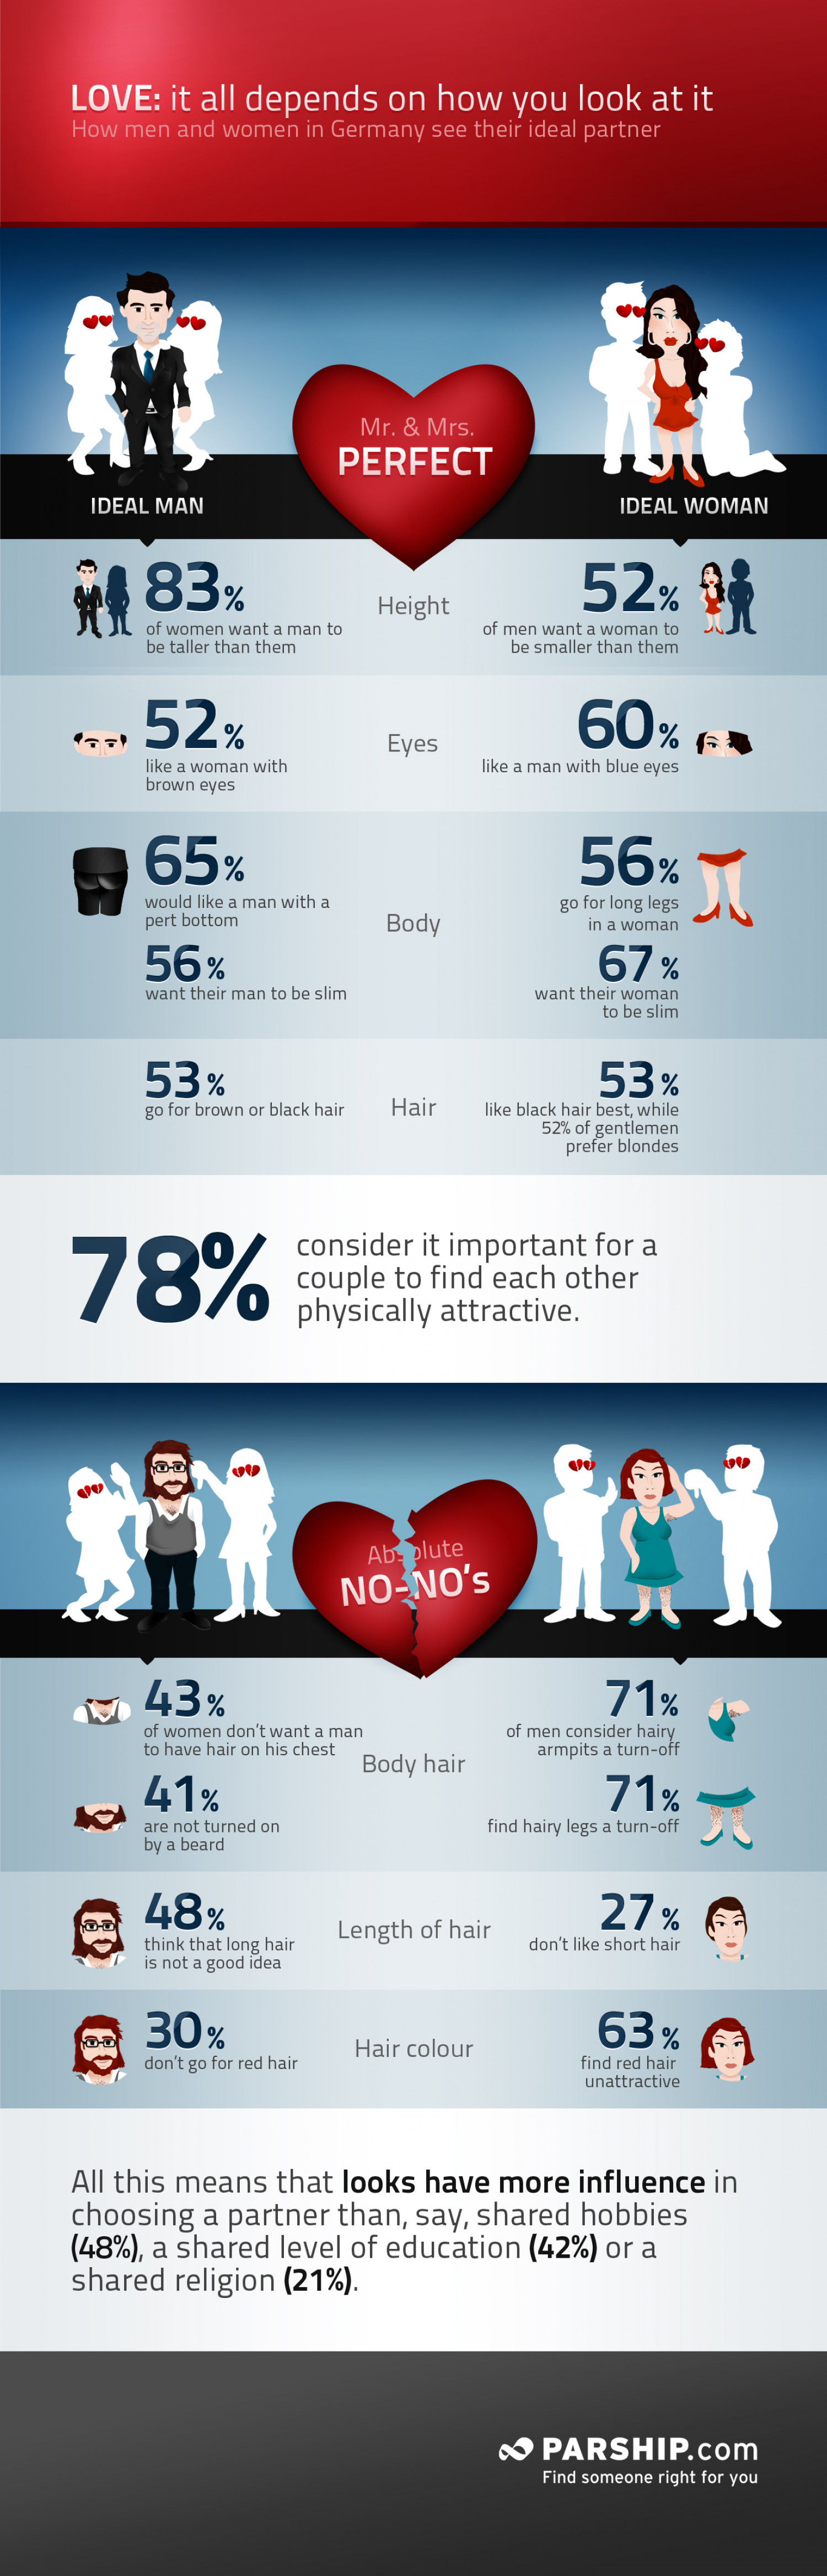 Mr & Mrs Perfect - How Germans picture their ideal man or ideal woman. Infographic